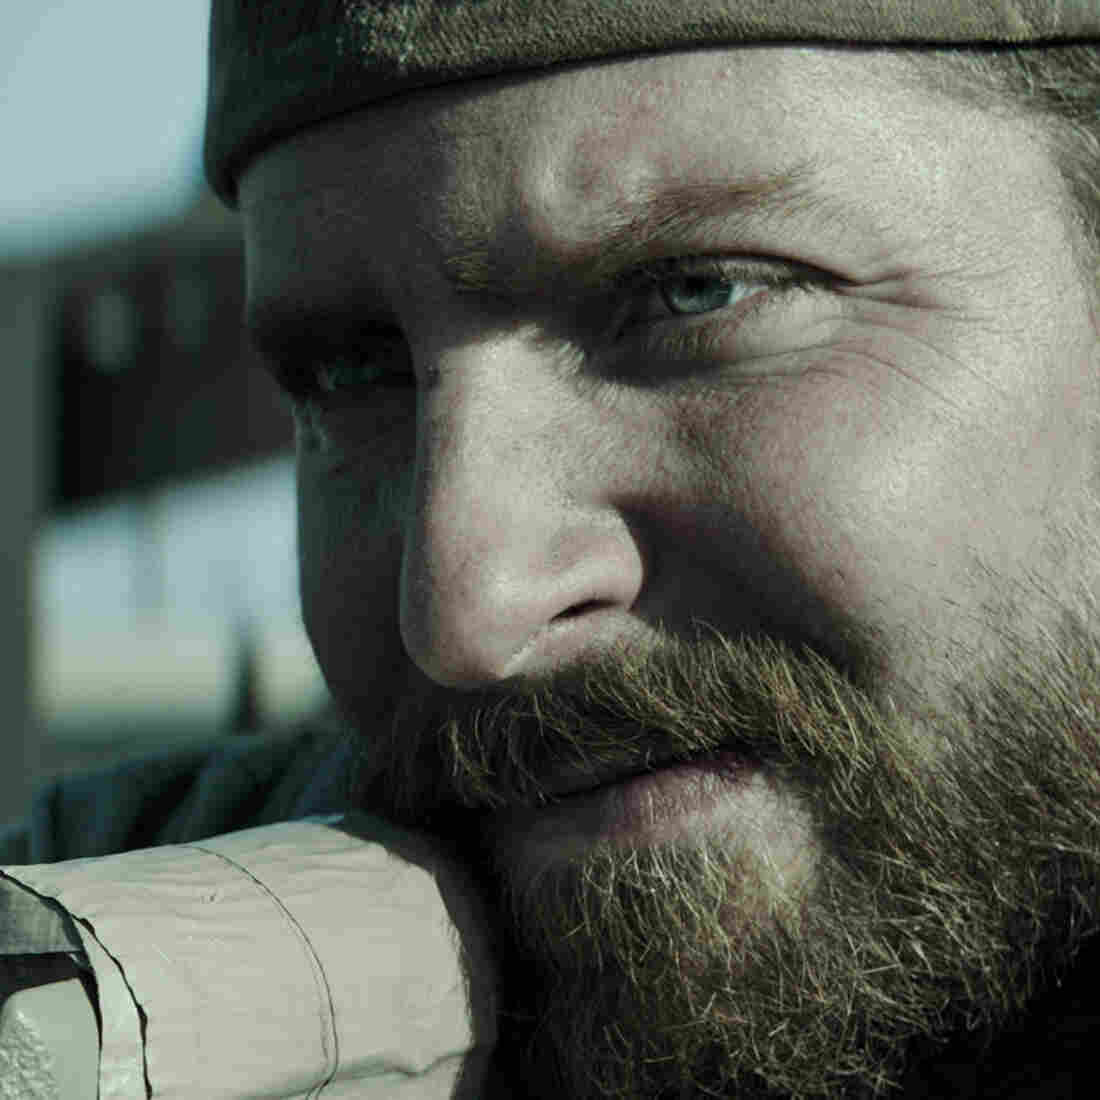 'American Sniper' Exposes Unresolved Issues About The Iraq War